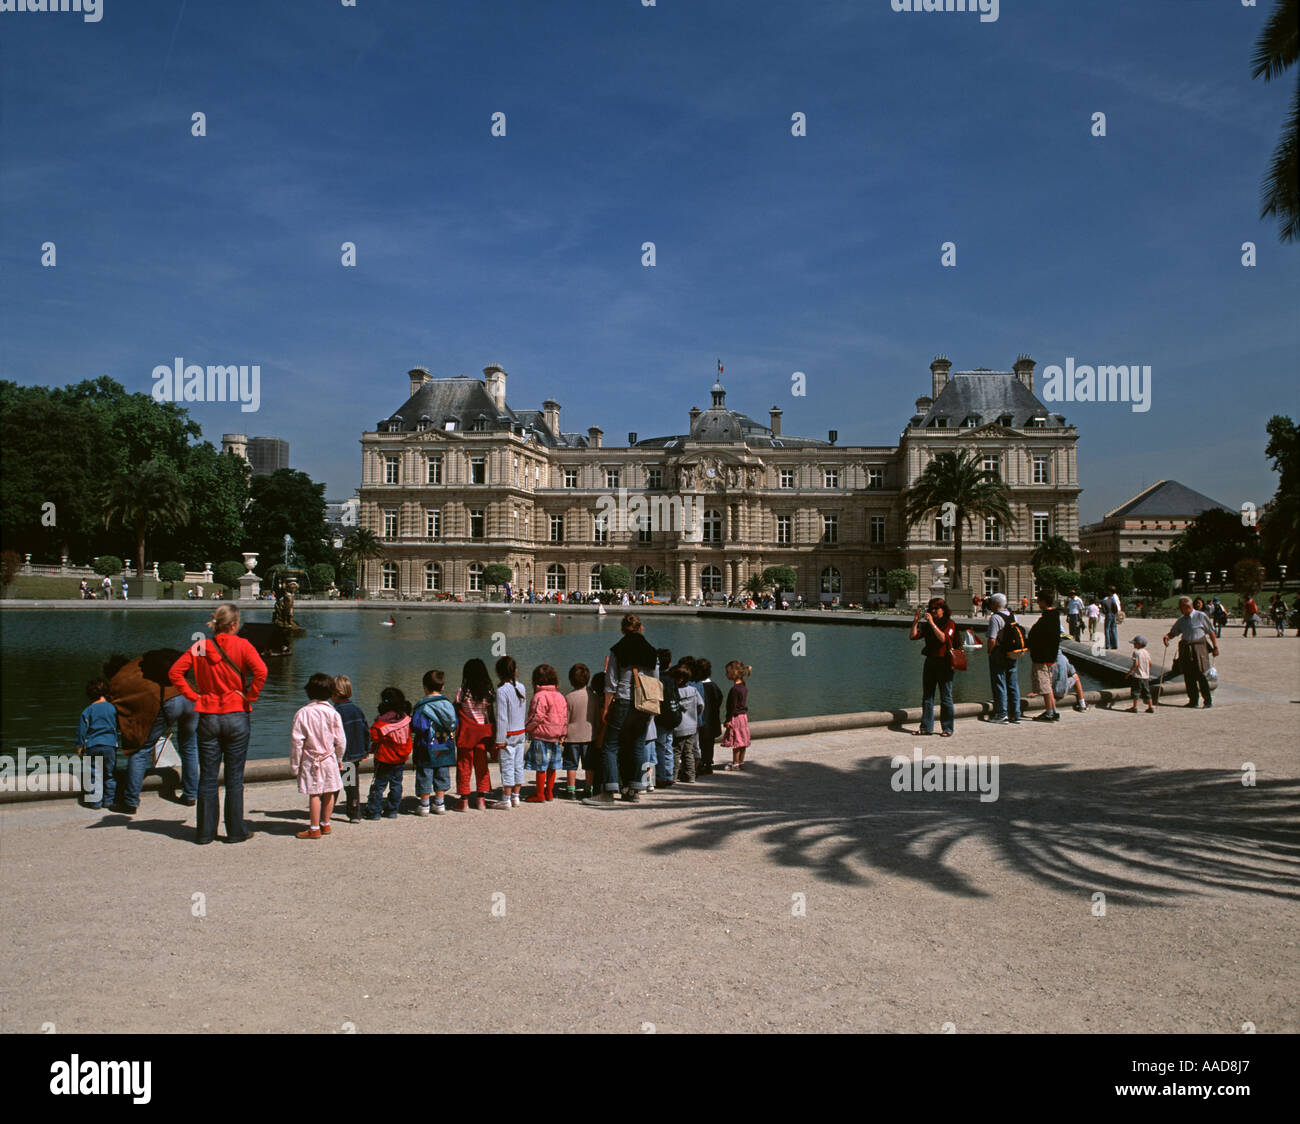 The Palais and Jardin de Luxembourg - Stock Image